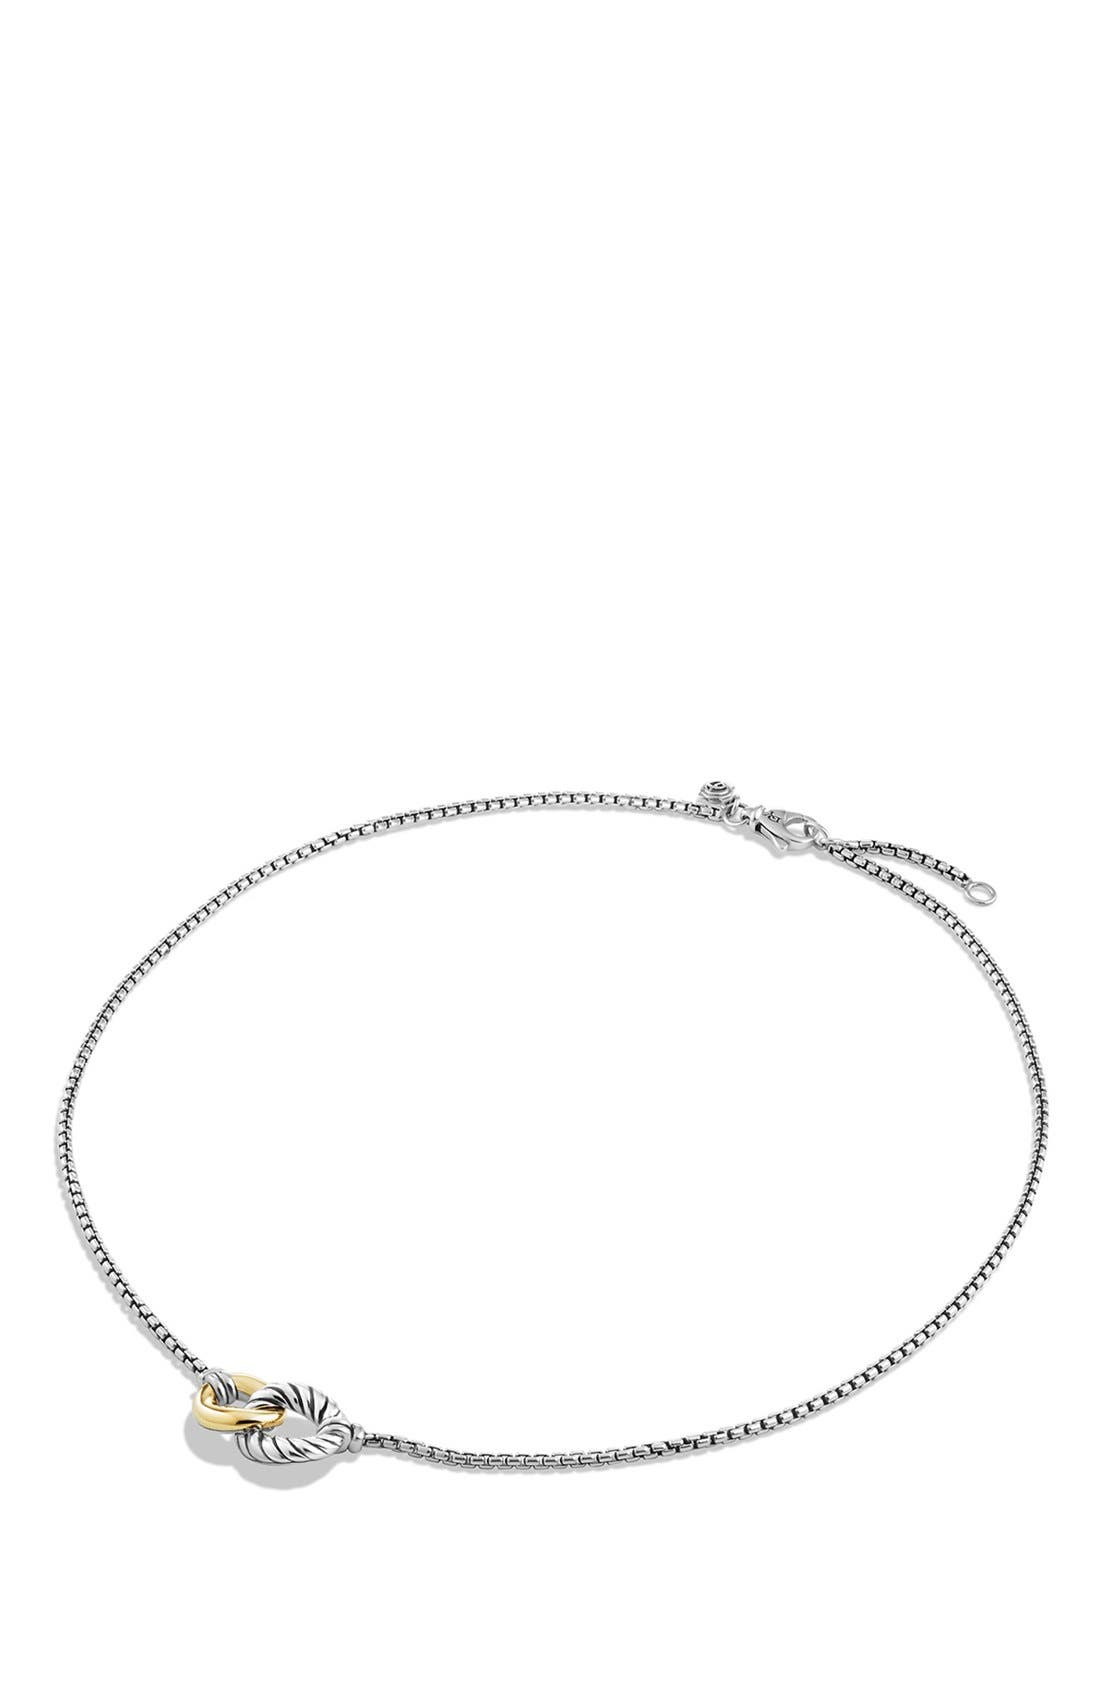 Alternate Image 2  - David Yurman 'Belmont' Curb Link Necklace with 18K Gold